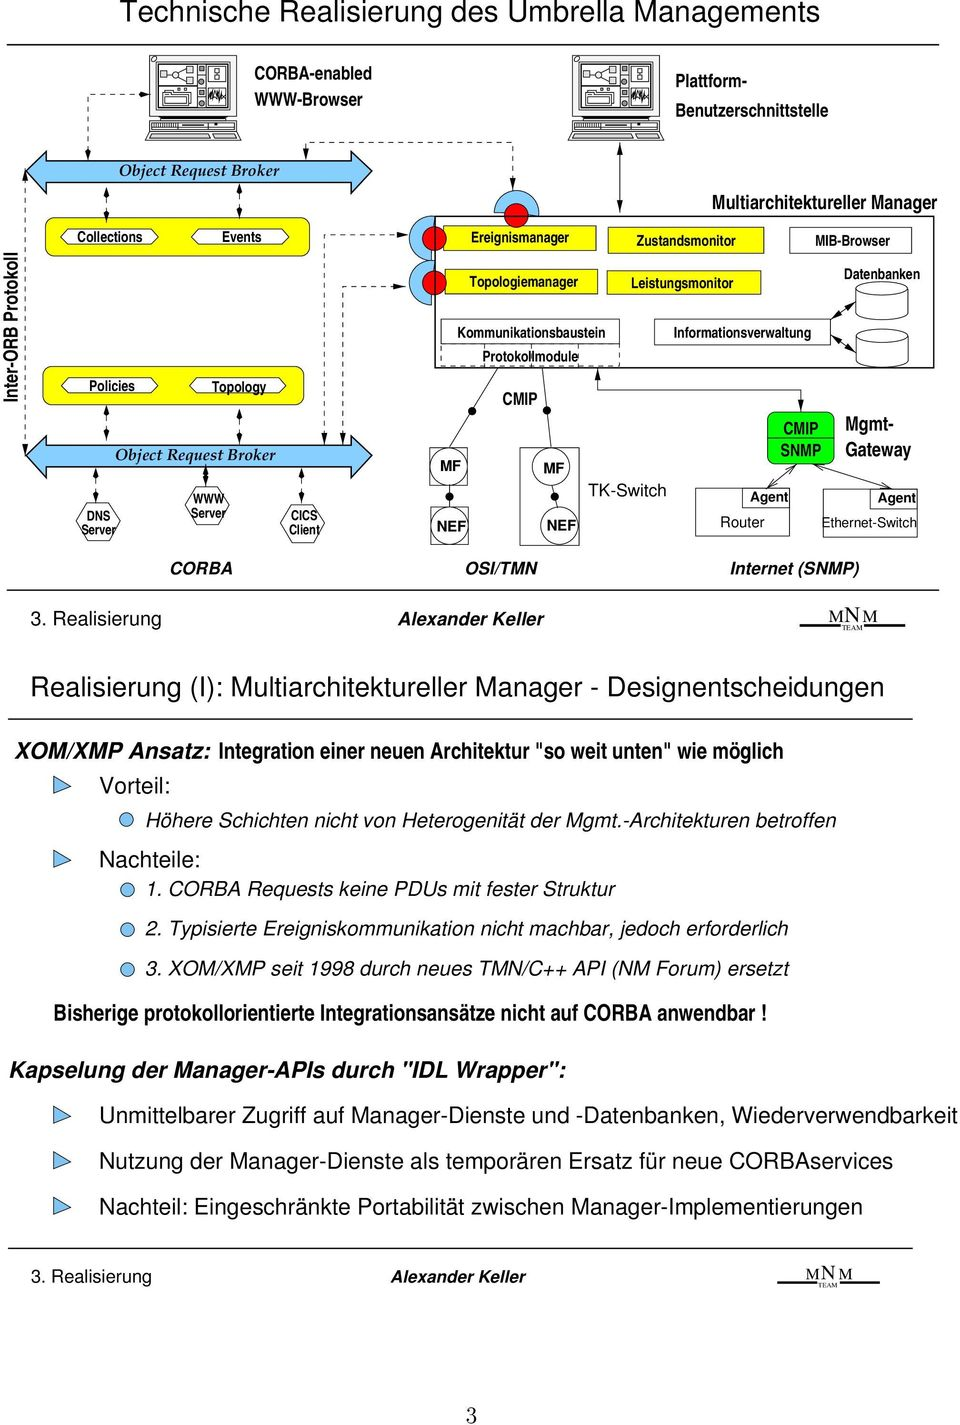 "Router Ethernet-Switch OSI/T Internet (SP) TEA Realisierung (I): ultiarchitektureller anager - Designentscheidungen XO/XP Ansatz: Integration einer neuen Architektur ""so weit unten"" wie möglich"